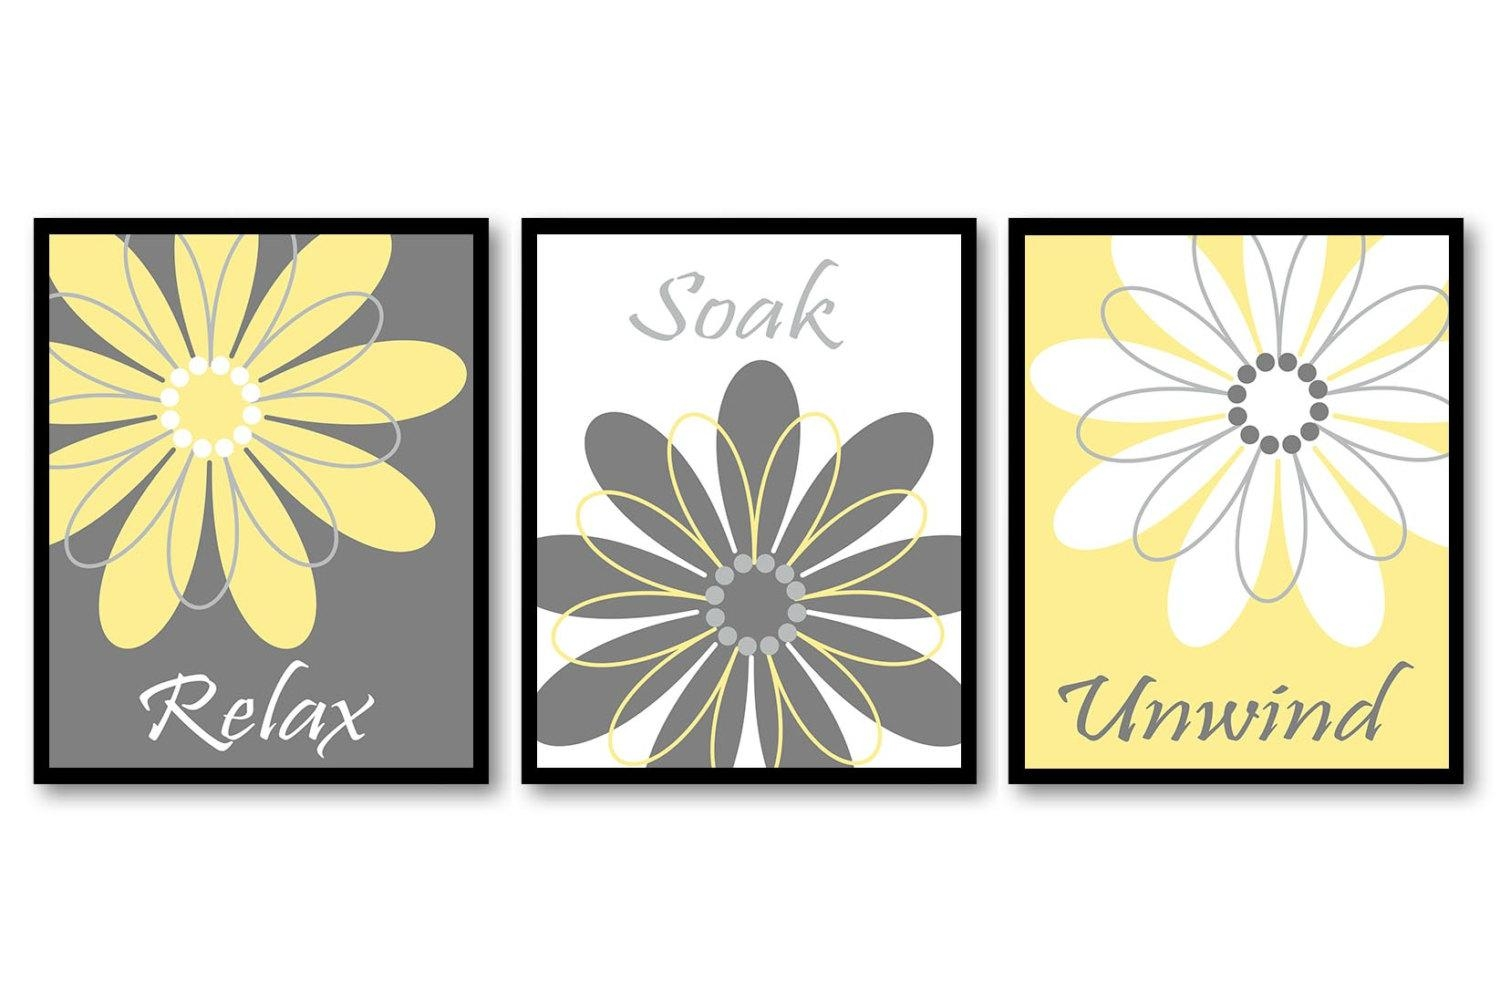 Bathroom Wall Art Yellow Grey Gray White Daisy Flower Print Regarding Gray And White Wall Art (View 5 of 20)